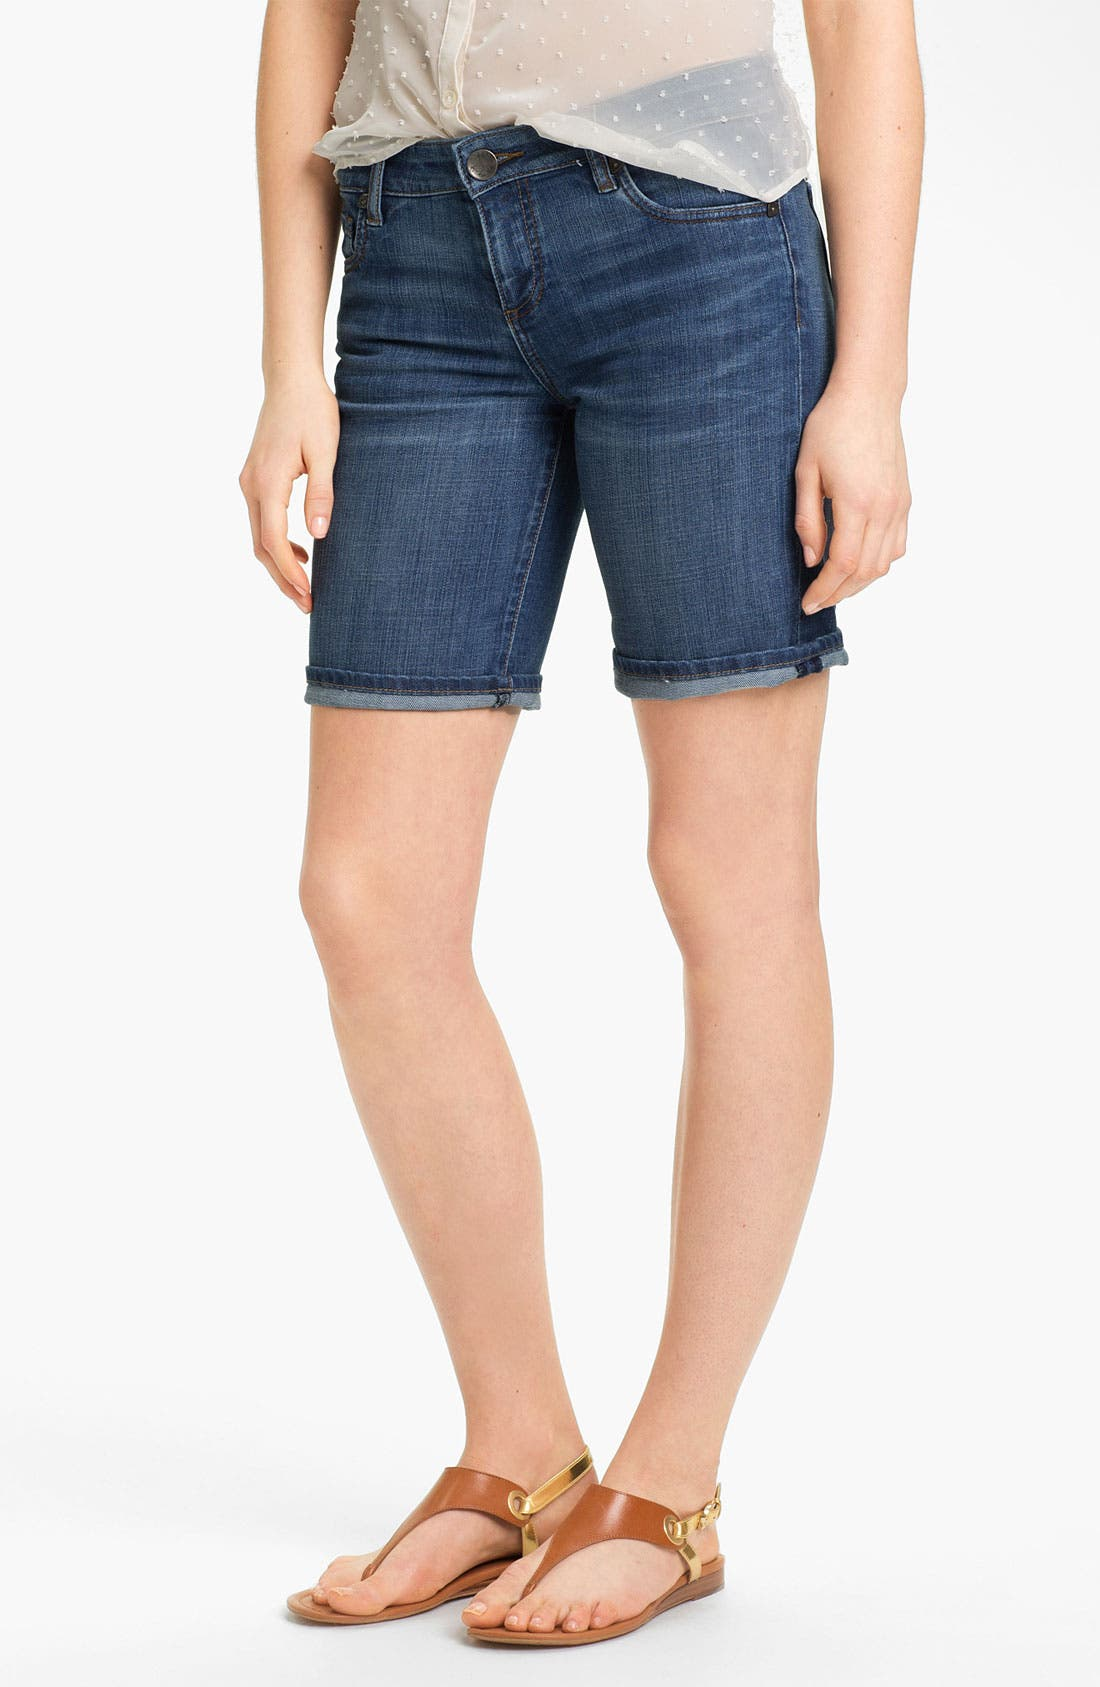 Alternate Image 1 Selected - KUT from the Kloth Boyfriend Denim Shorts